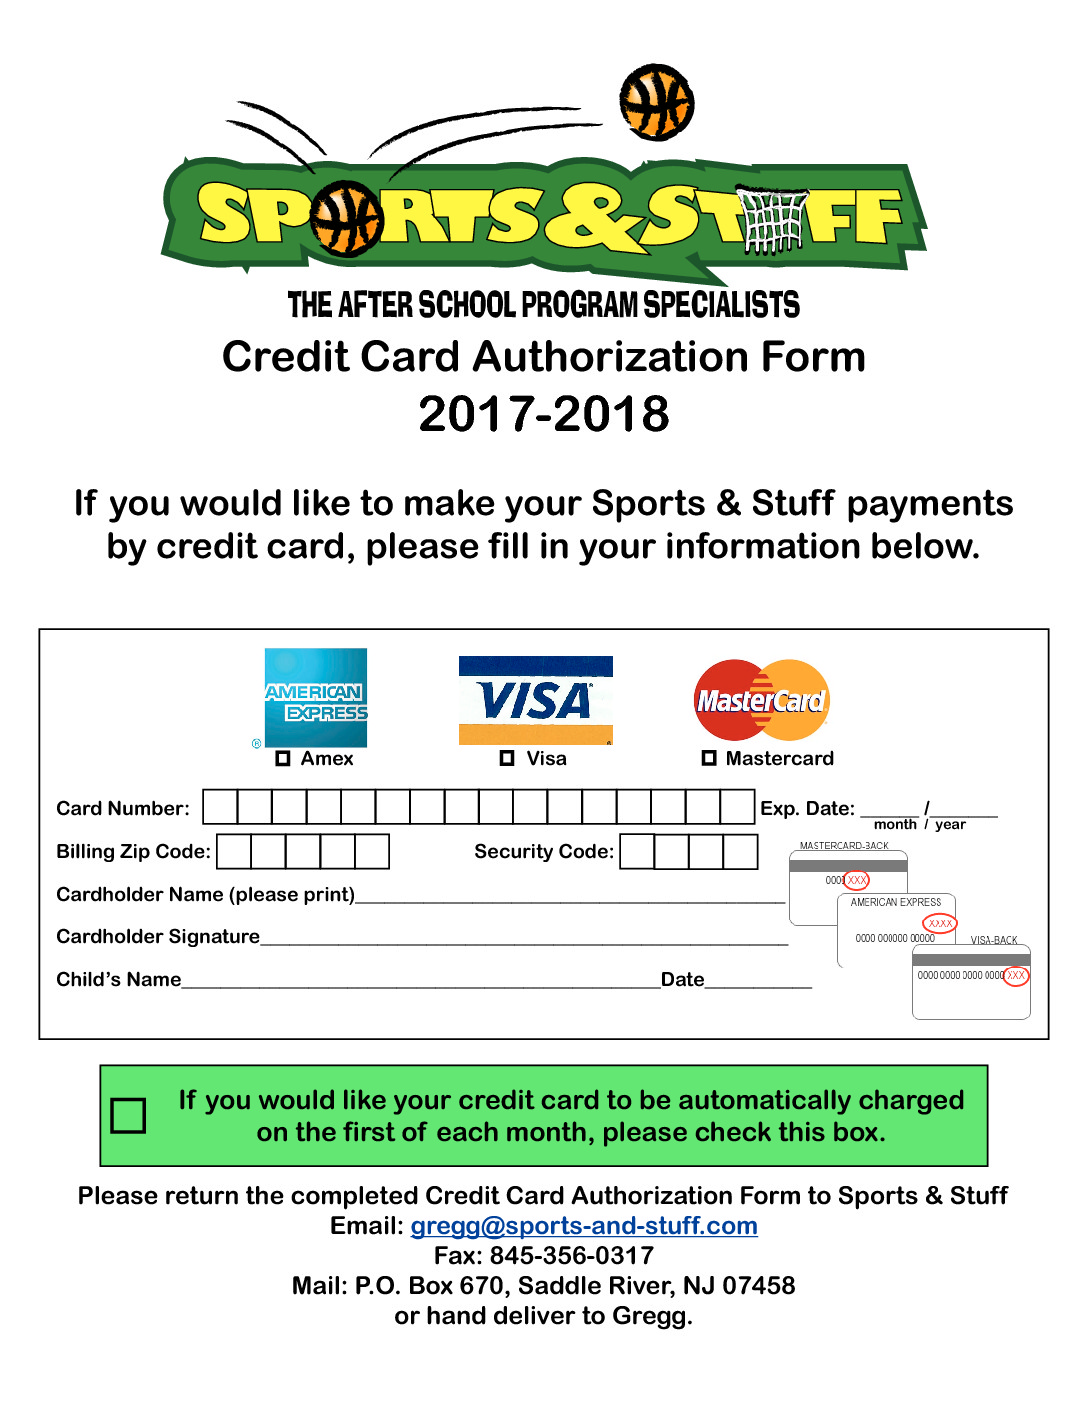 Sports & Stuff credit card authorization form